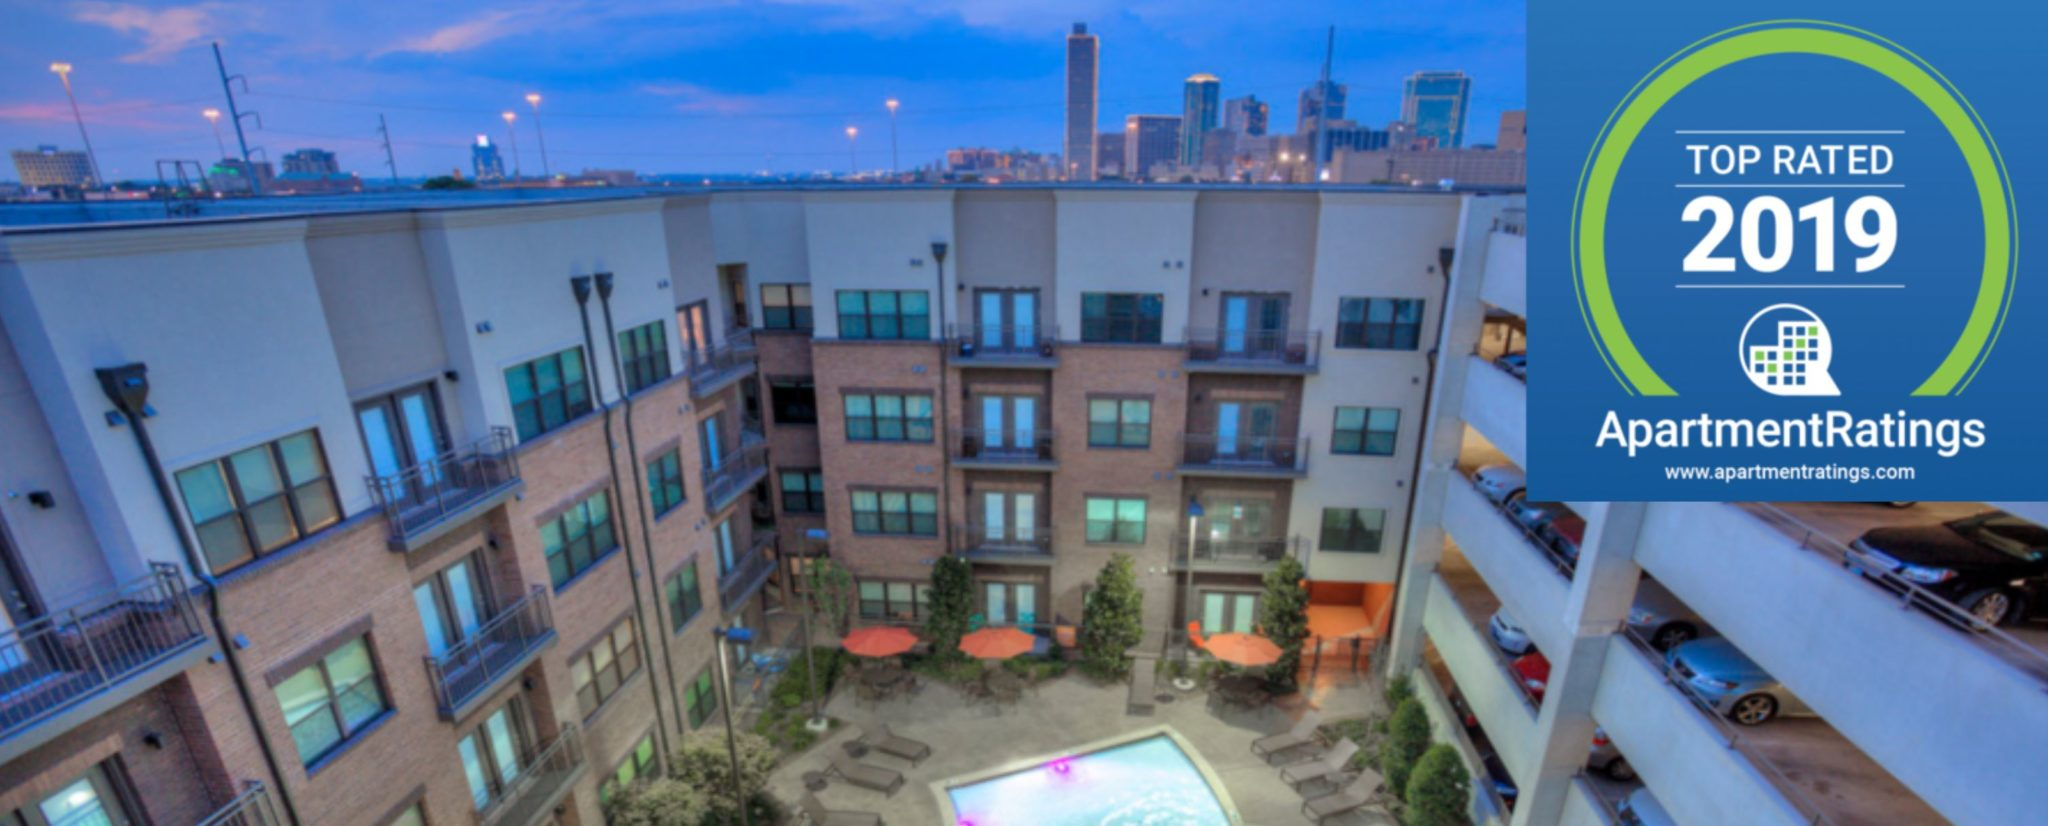 Top Rated in 2019 by ApartmentRatings.com!